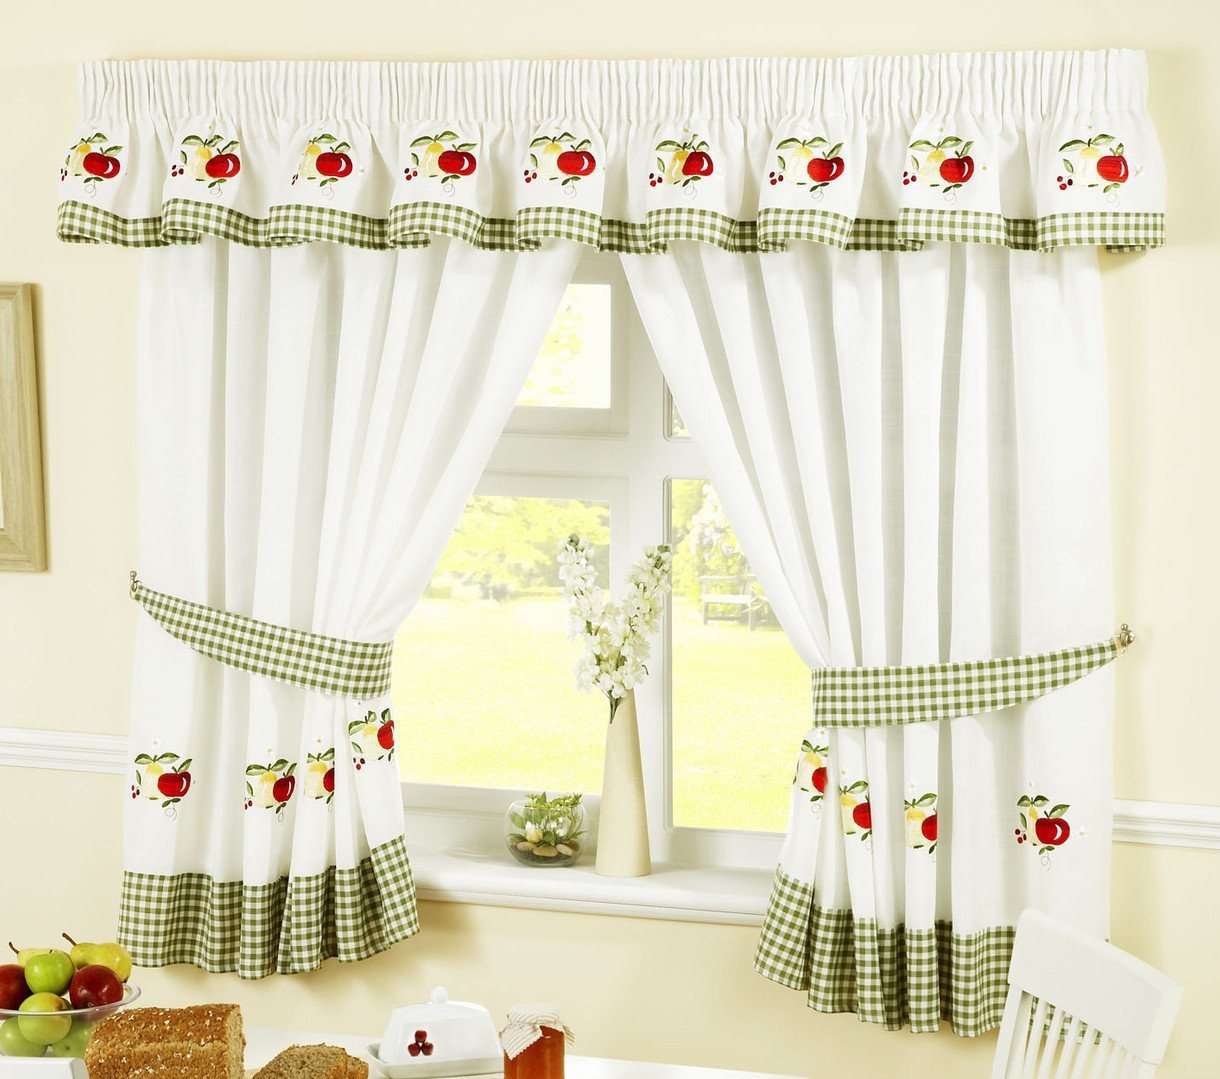 """APPLES AND PEARS GREEN RED GINGHAM KITCHEN CURTAINS W46"""" X L54"""" INC TIE BACKS"""